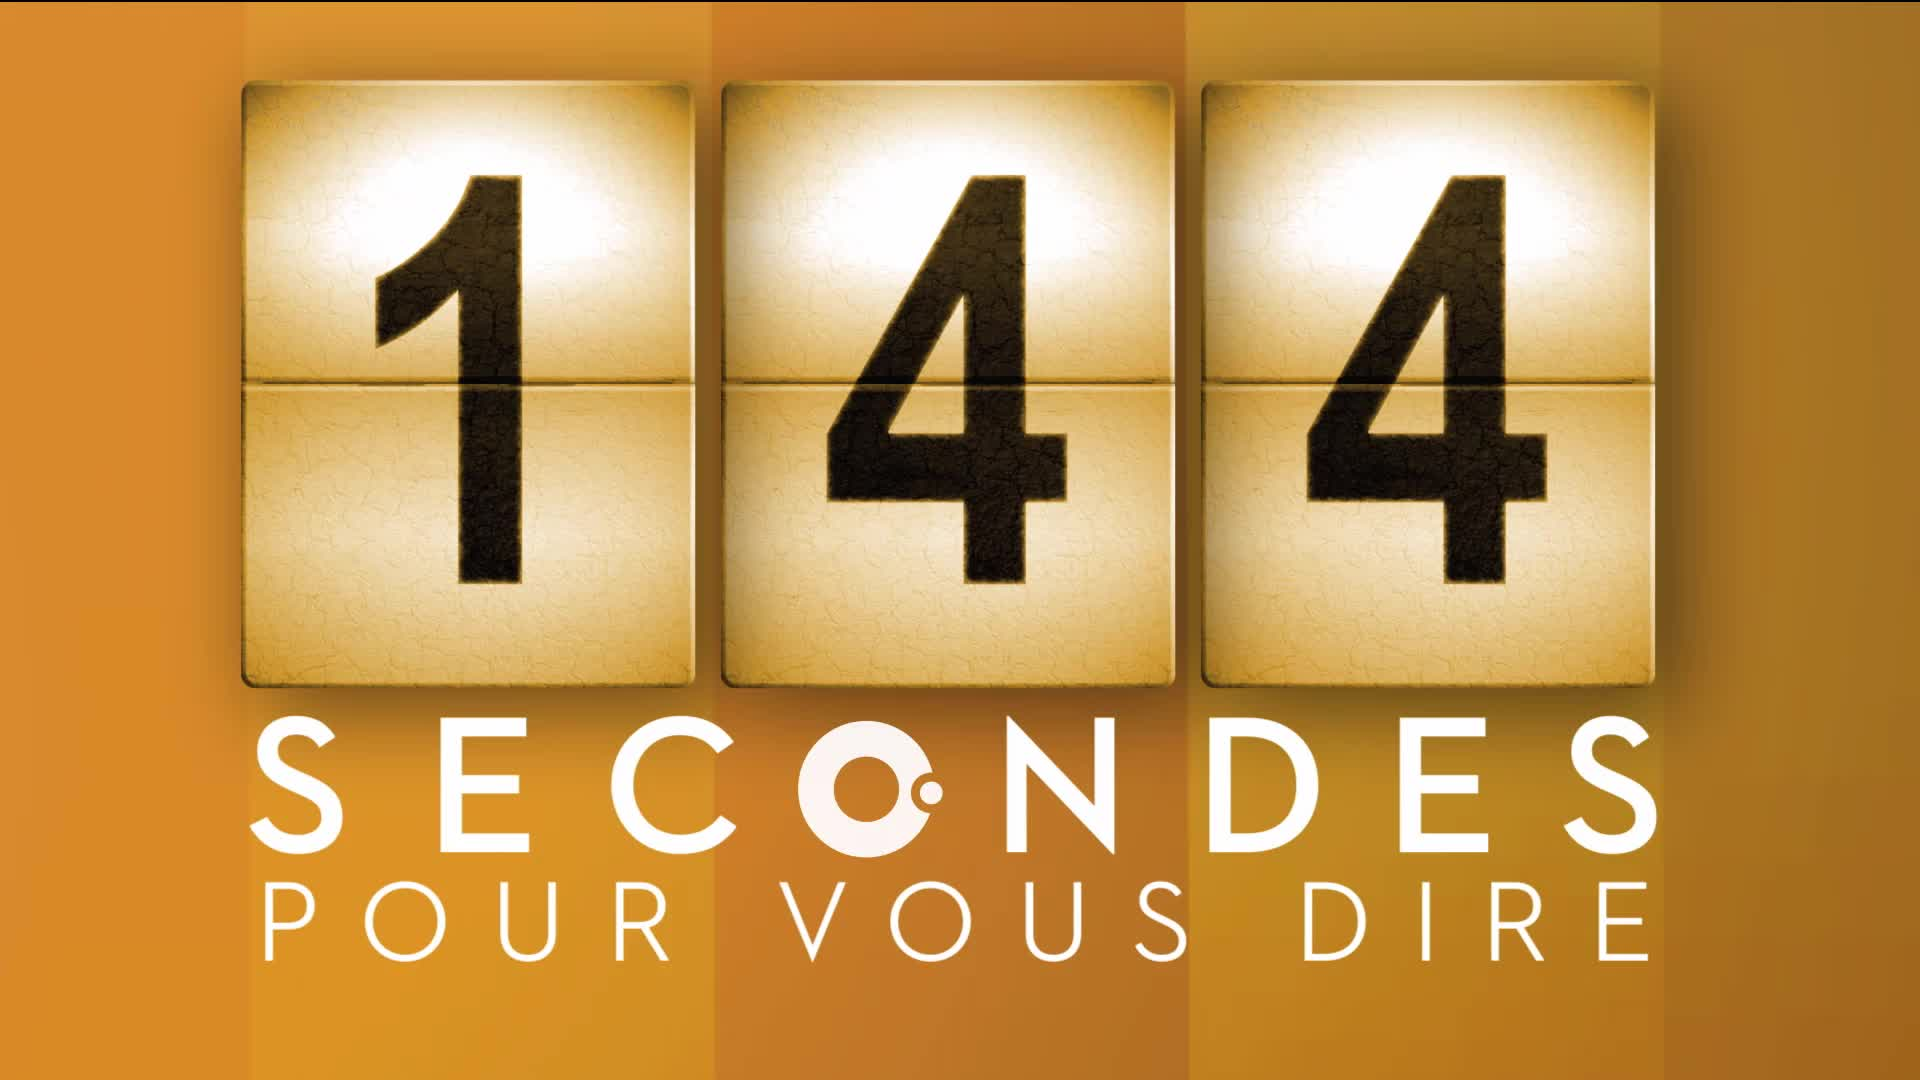 144 secondes